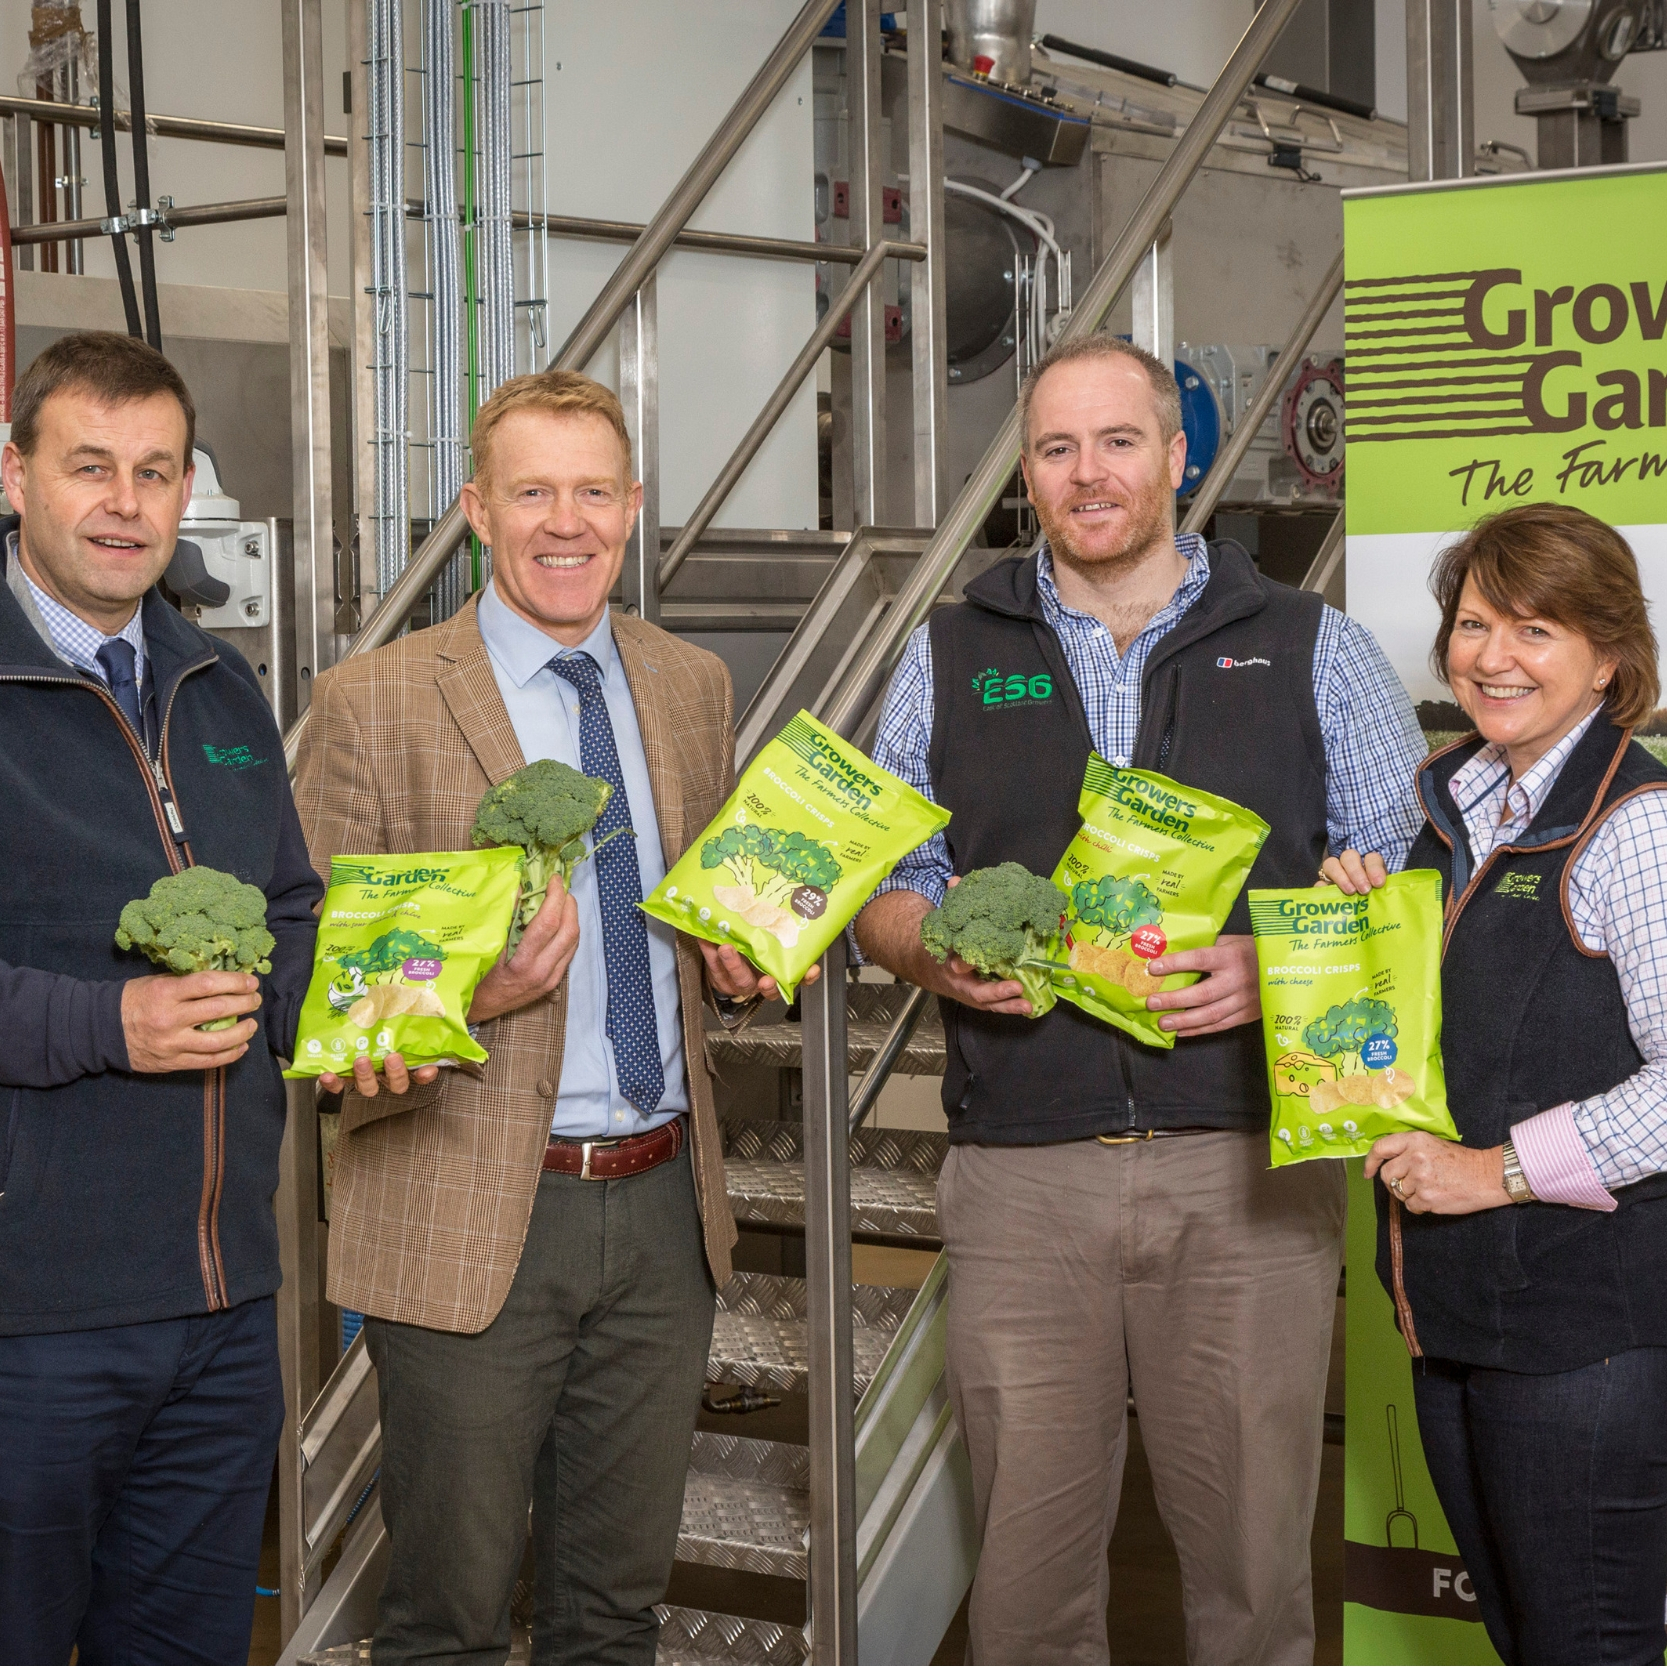 Adam Henson visits Growers Garden